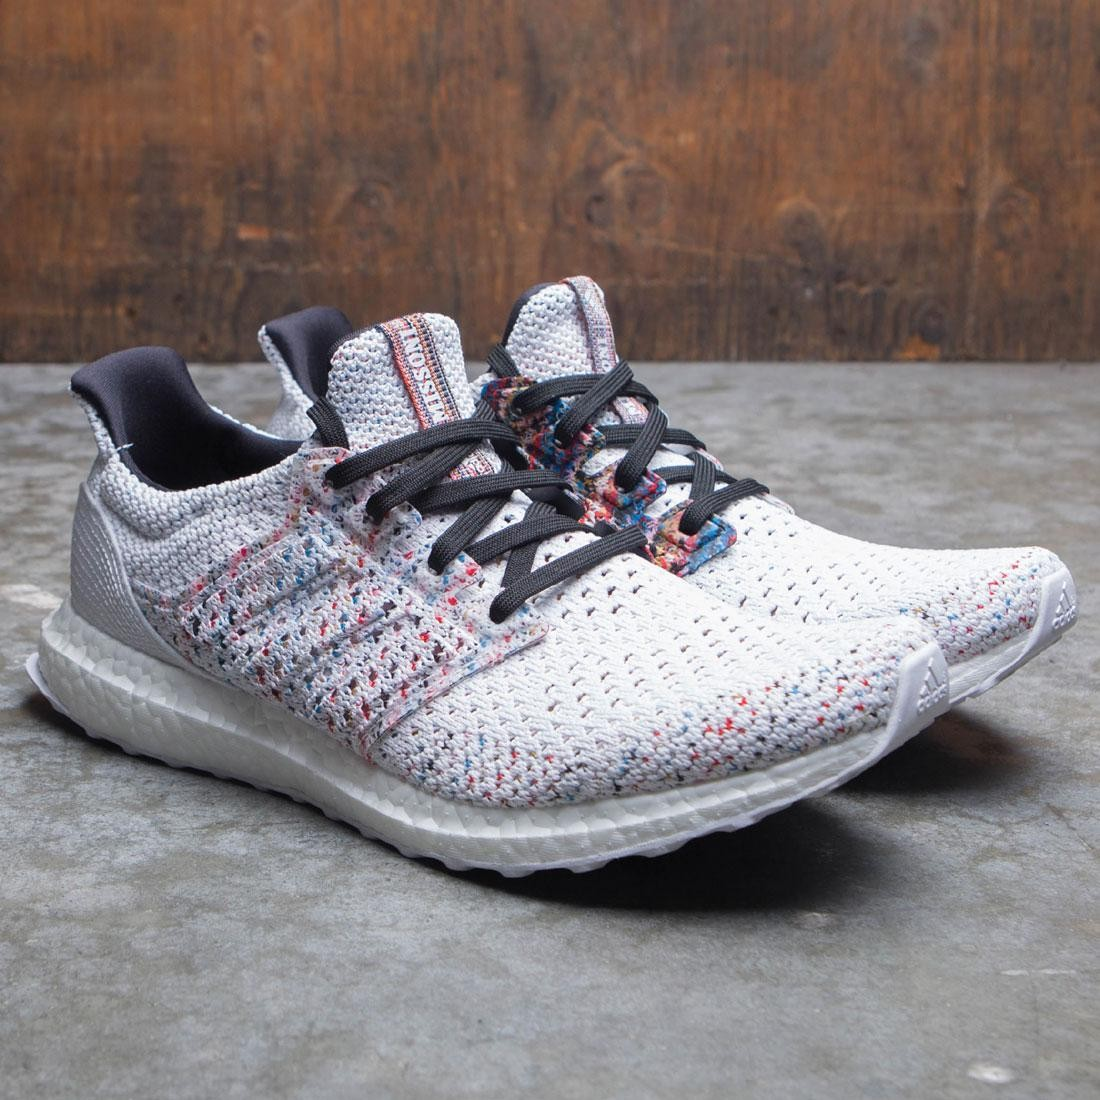 842c228d197 Adidas x Missoni Men UltraBOOST CLIMA (white   footwear white   active red)